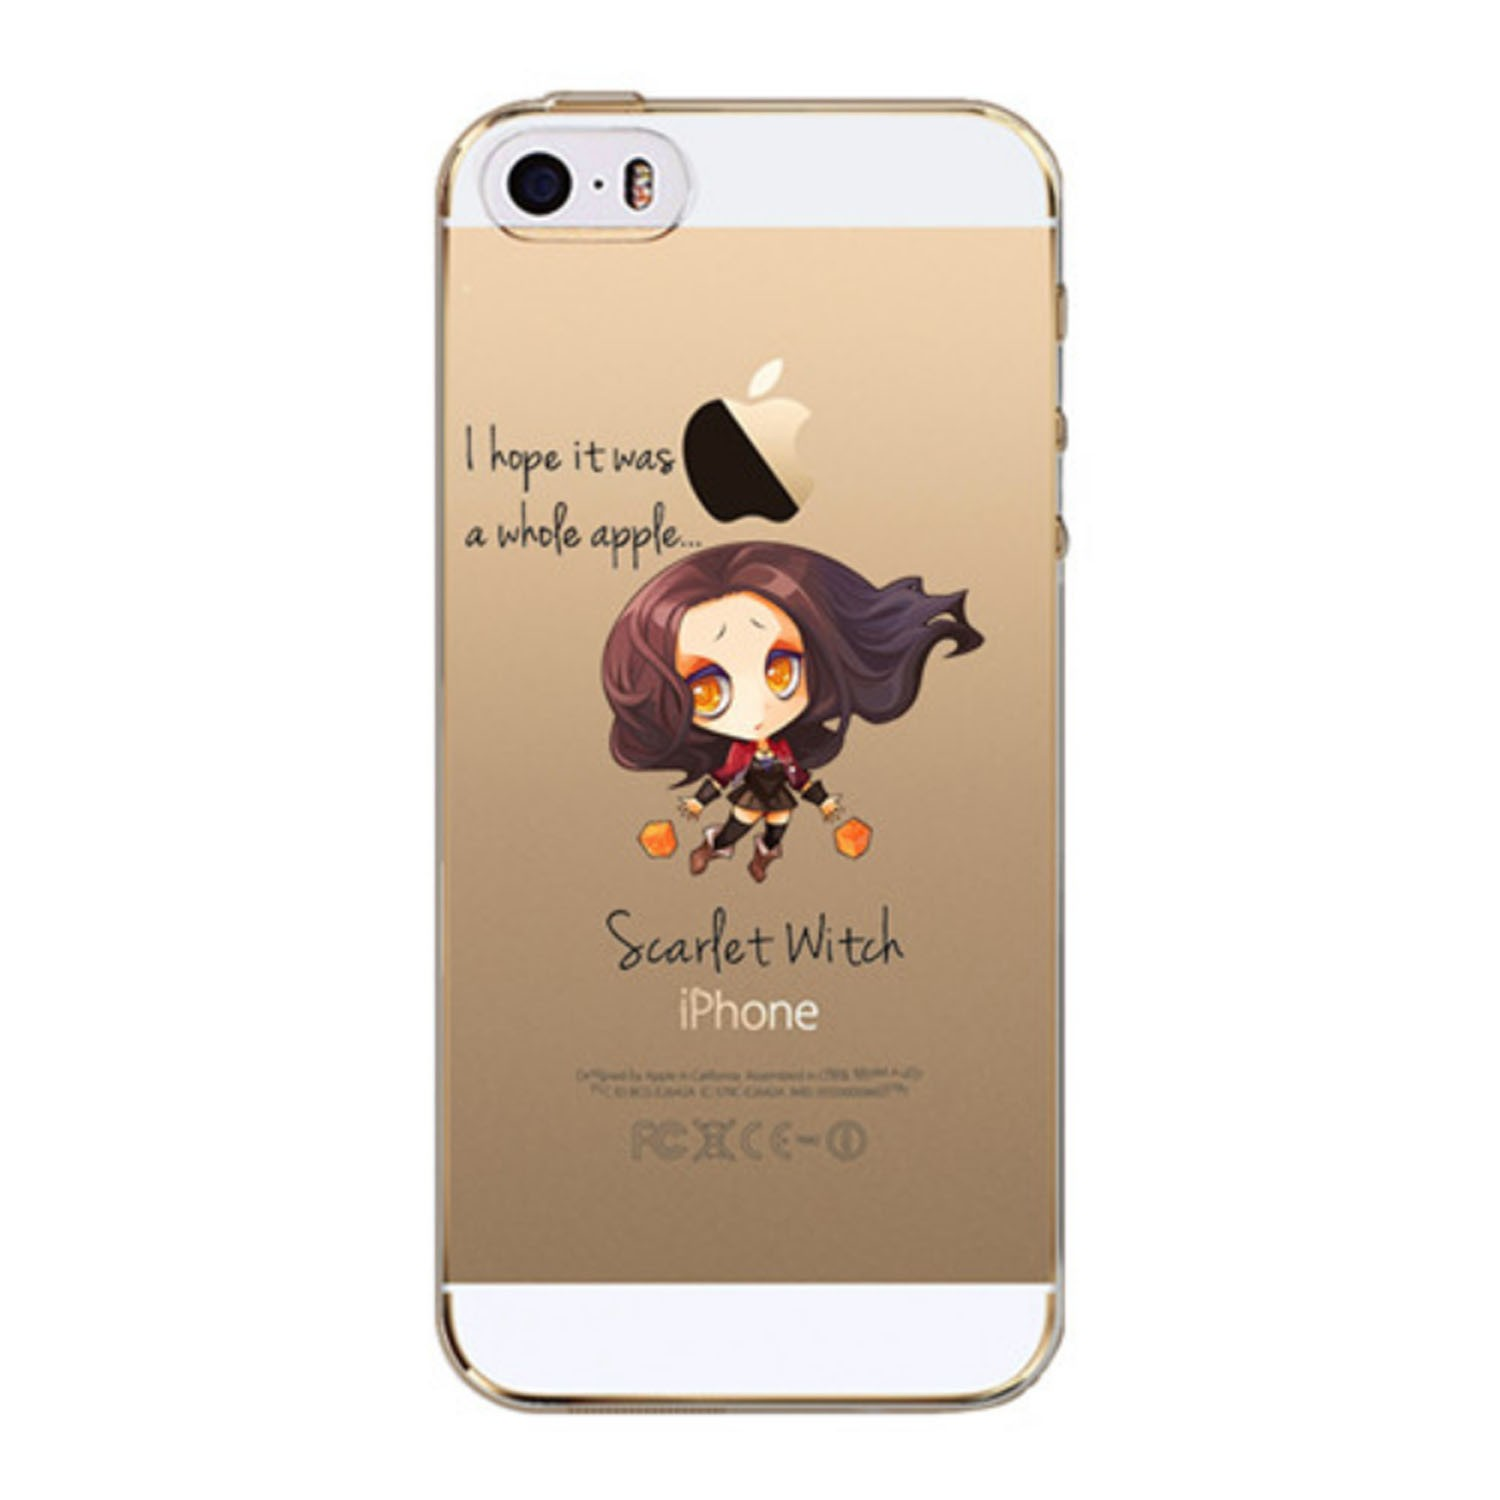 Kritzel Case iPhone SE - Scarlet Witch